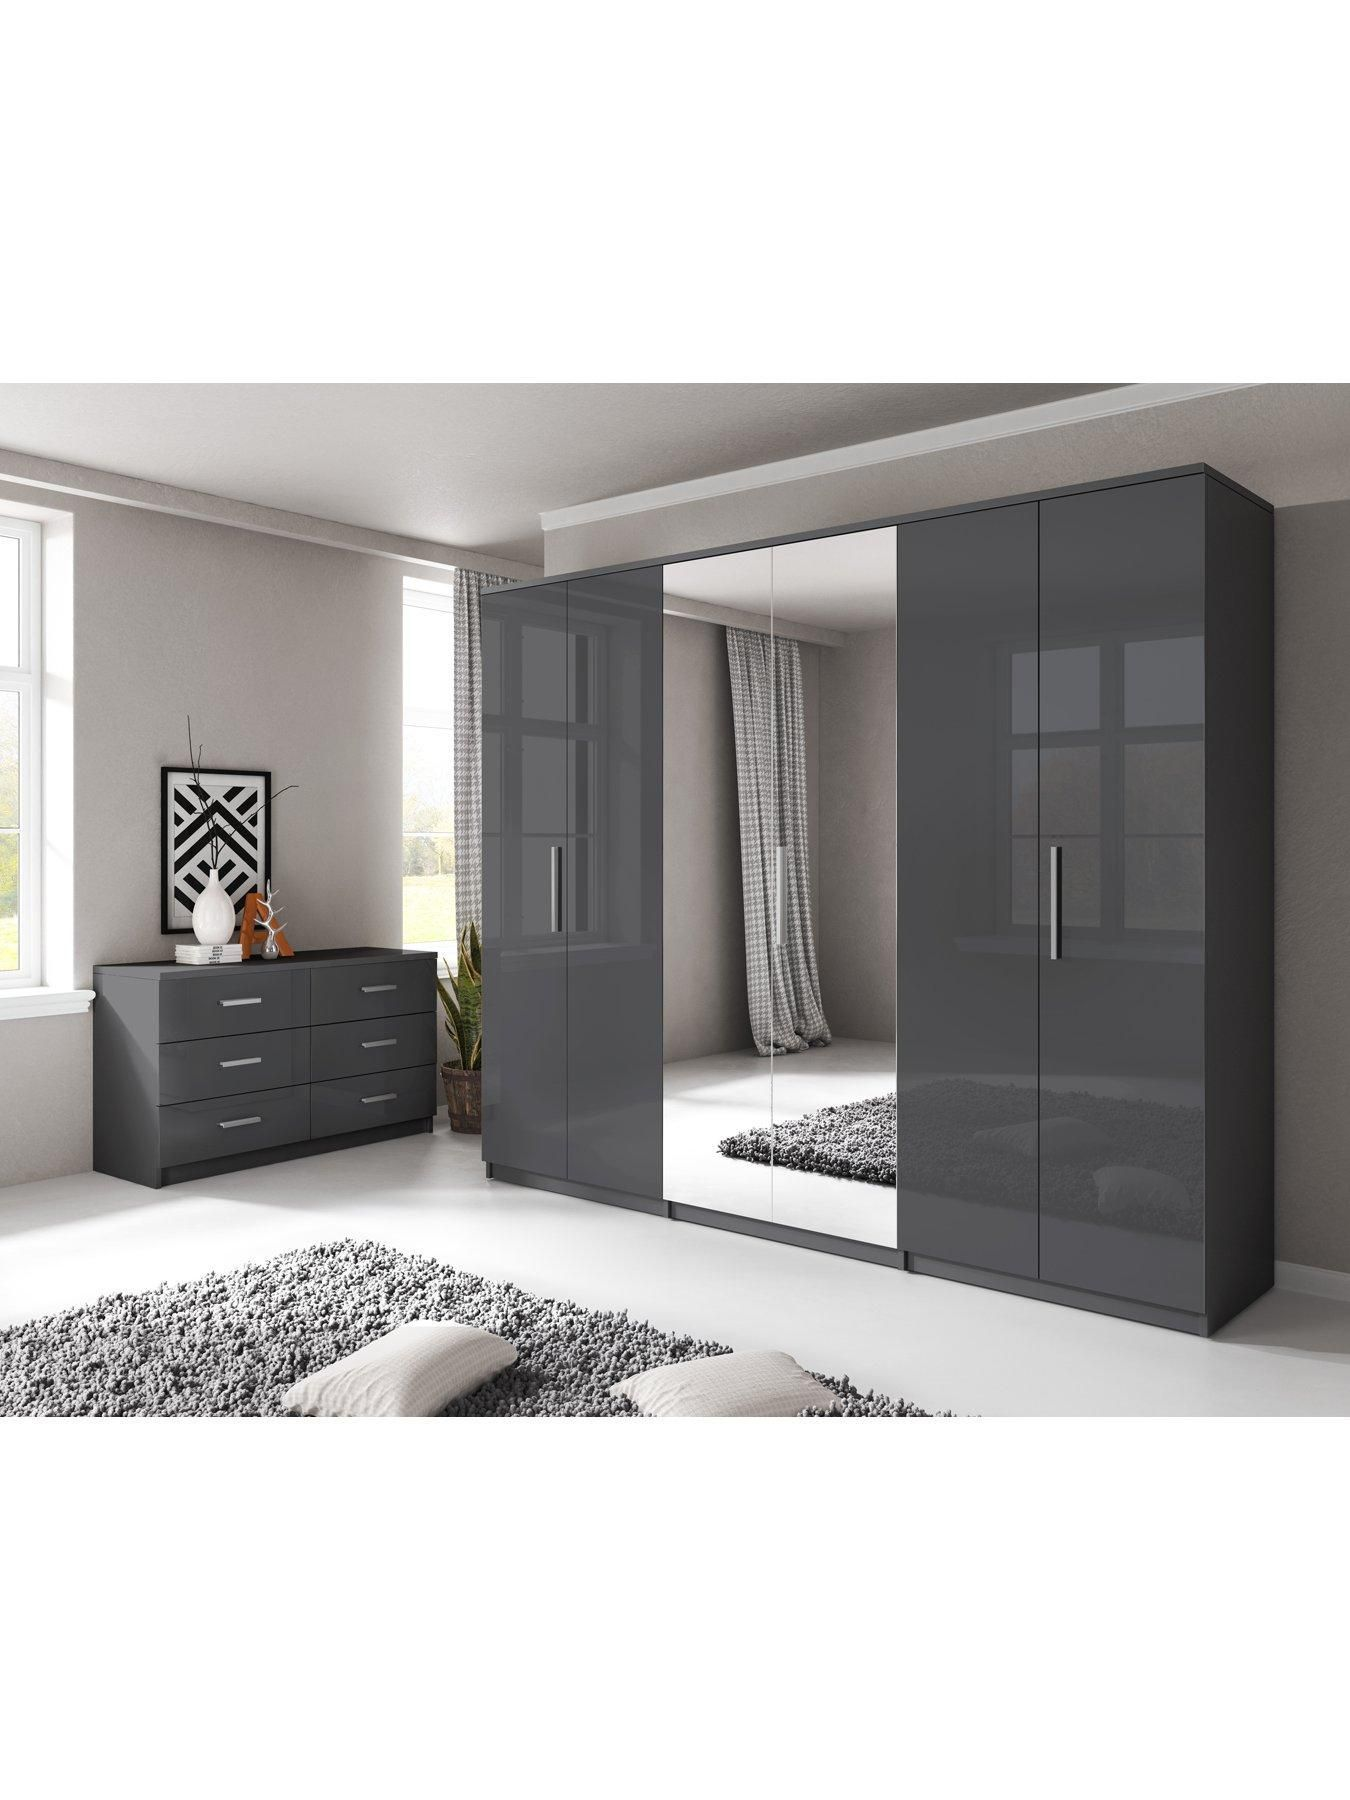 Prague Gloss 6 Door Mirrored Wardrobe Bedroom Furniture With A